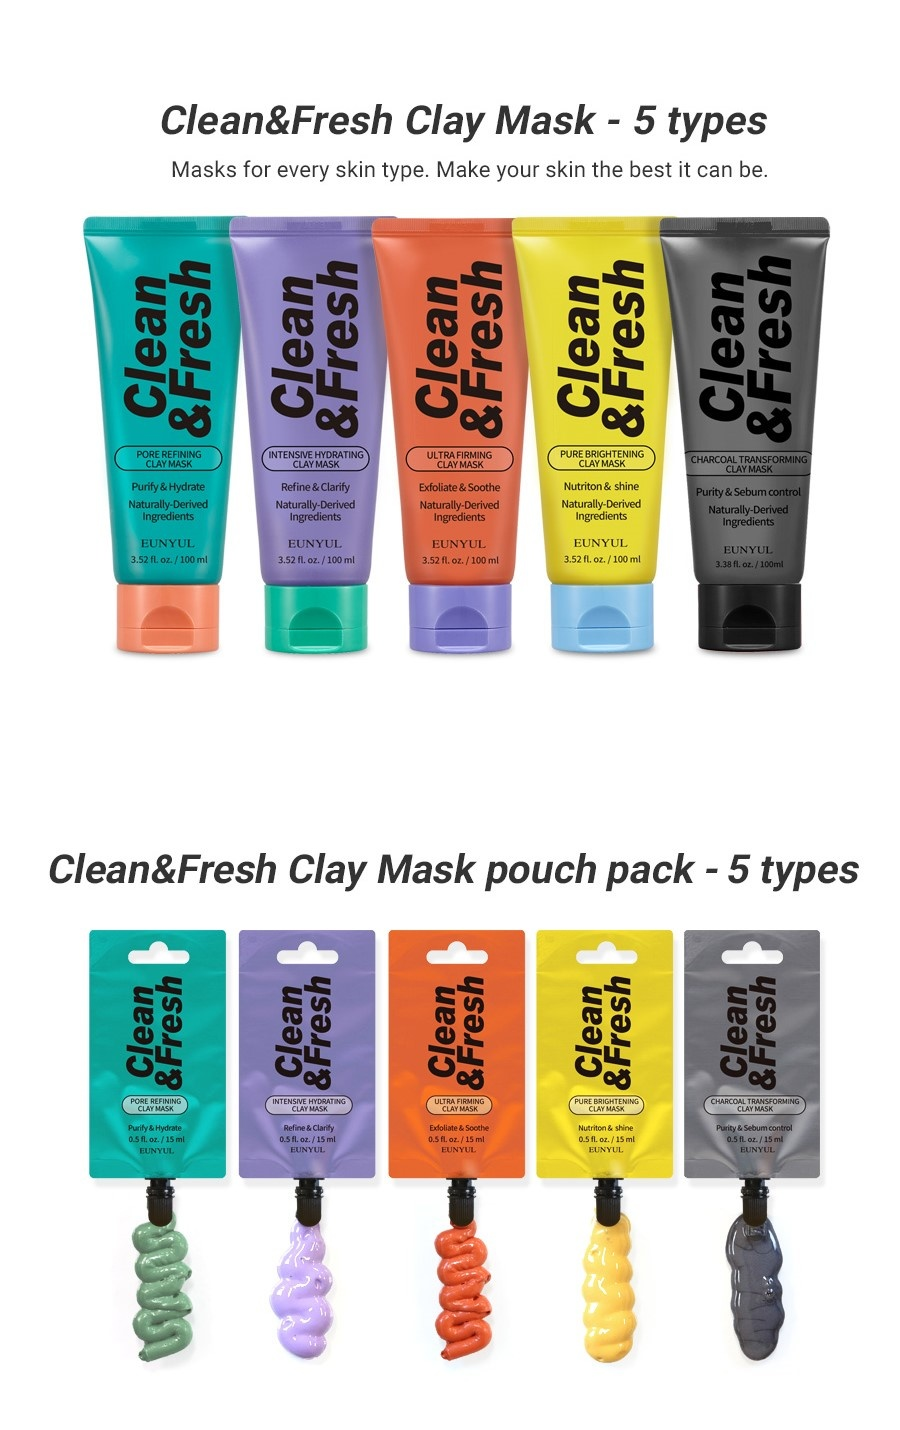 Clean & Fresh Clay Mask Pouch Pack - Ultra Firming-5